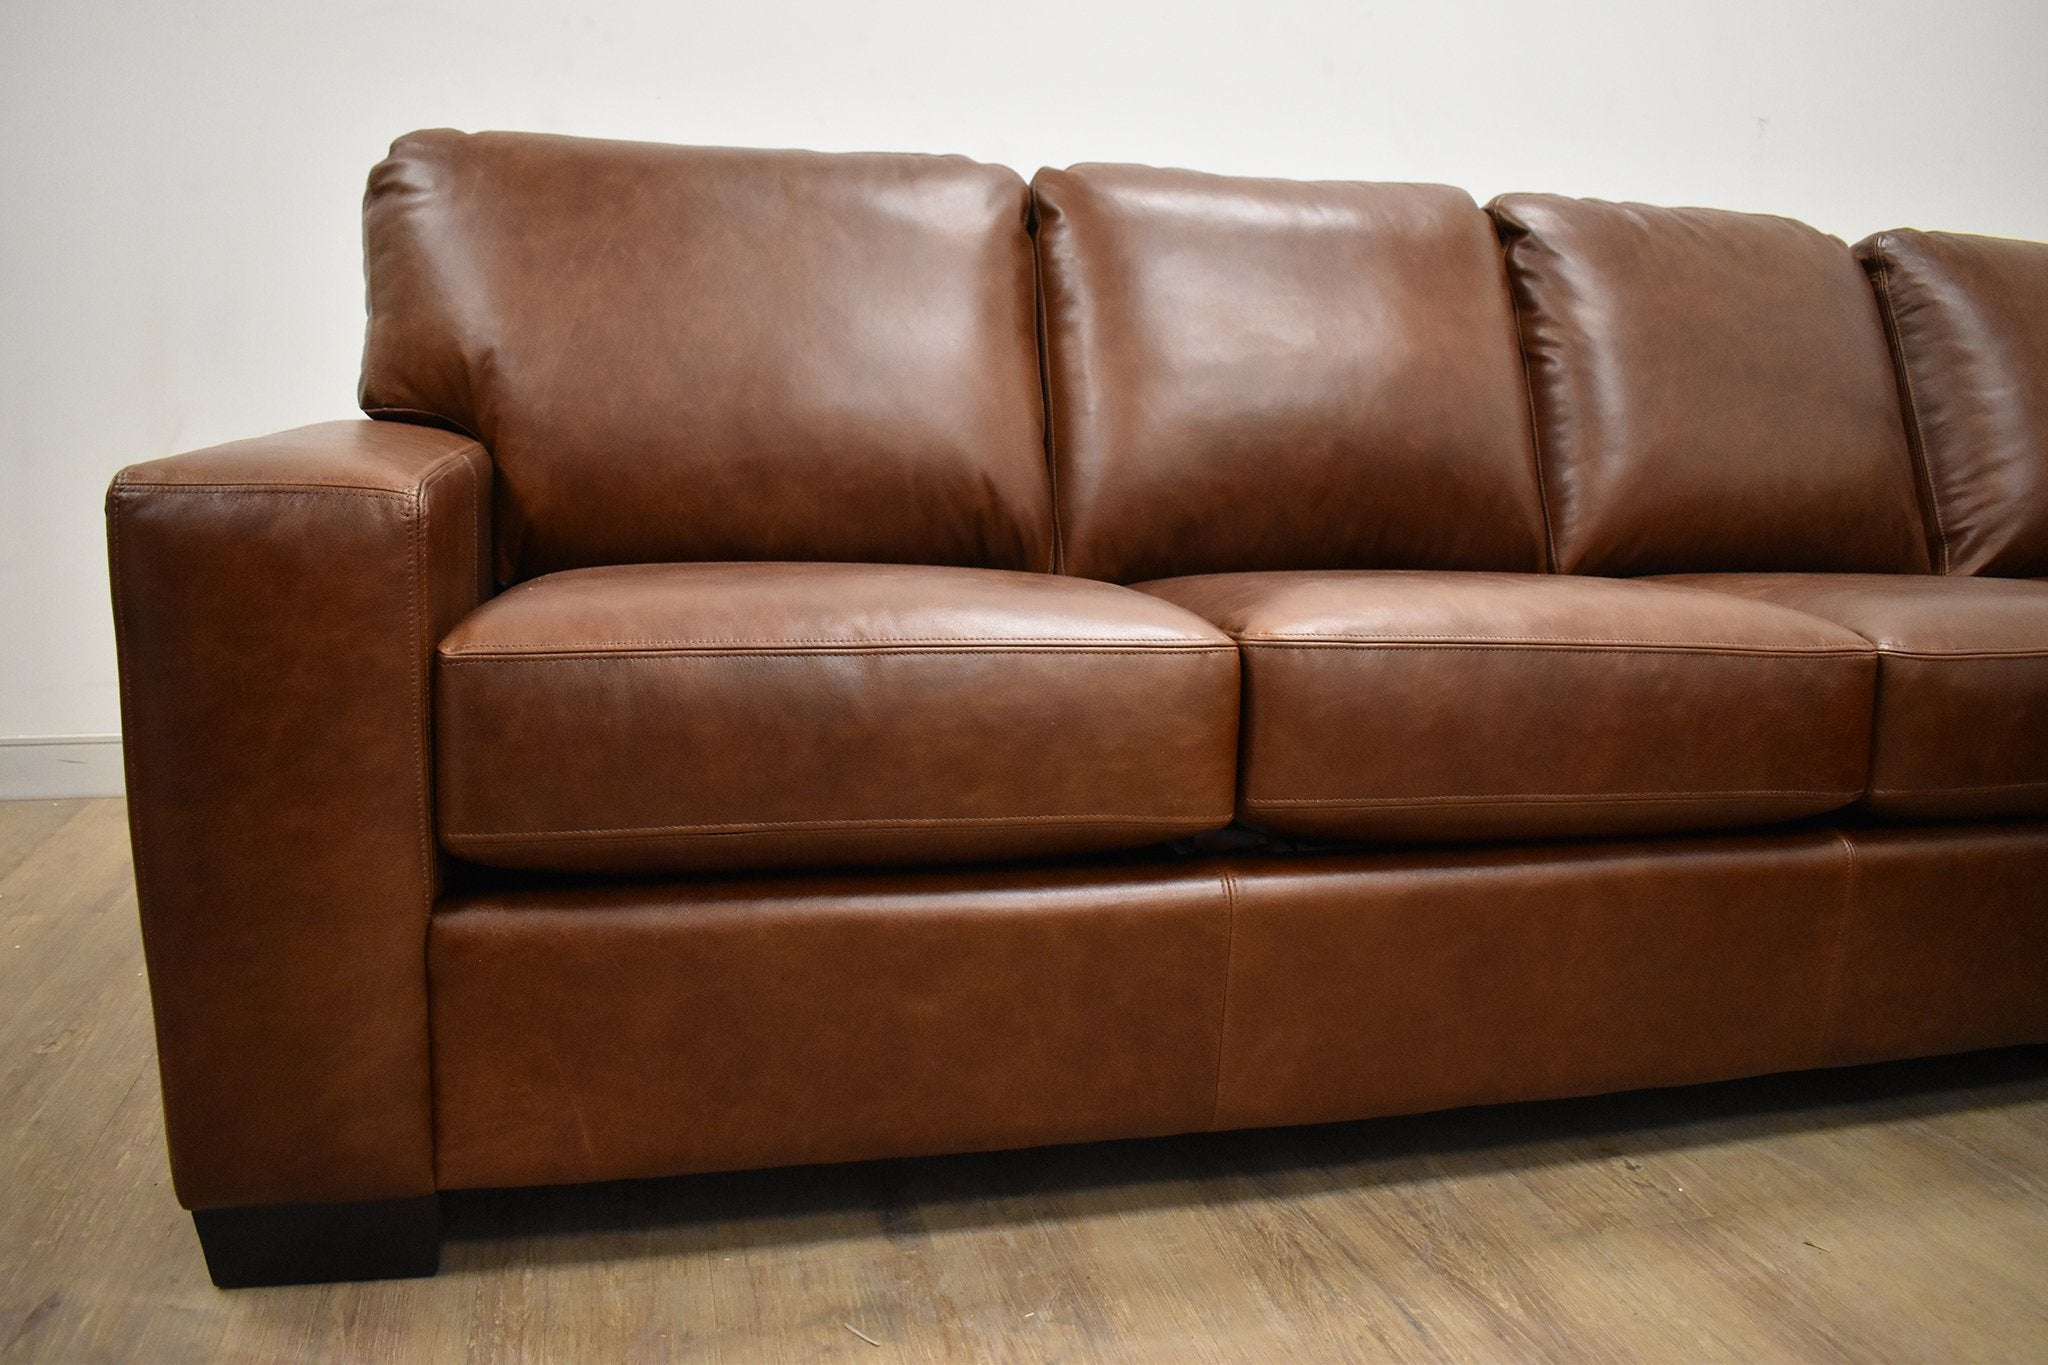 RED DEER CUSTOM LEATHER SOFAS-furniture stores regina-Hunters Furniture